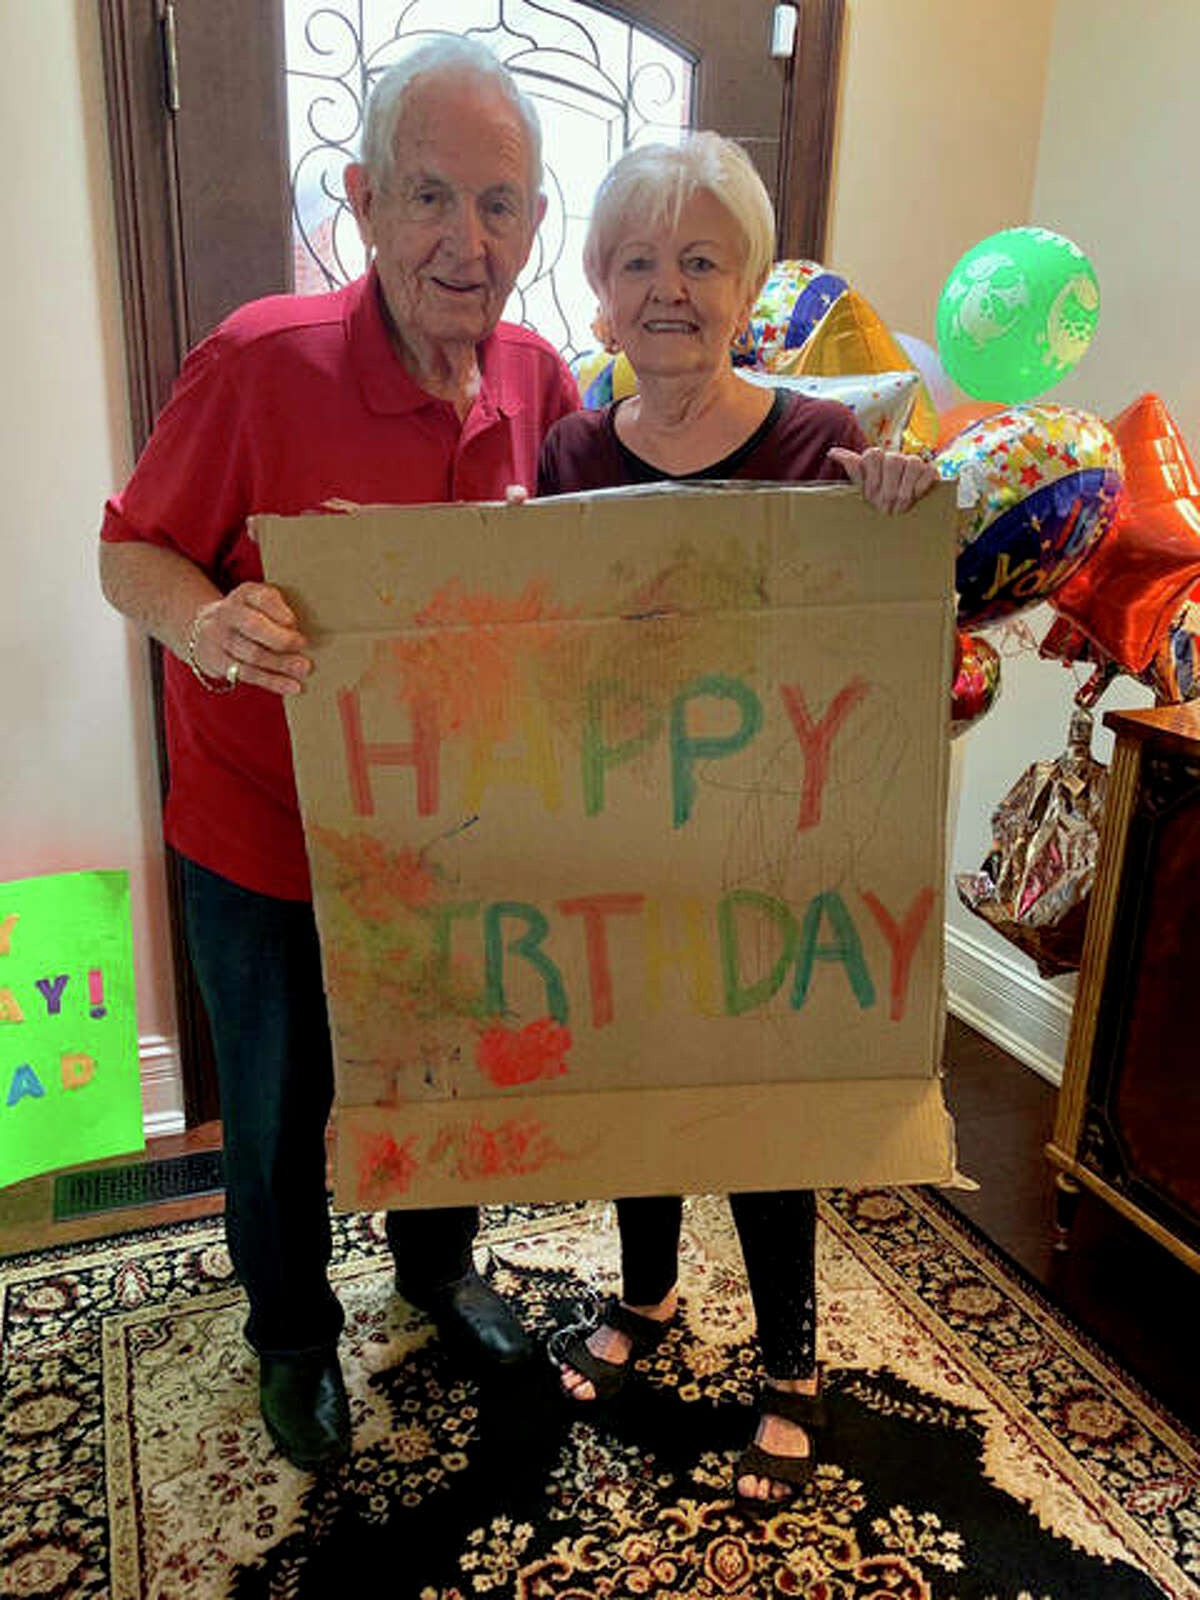 Dean and Joan Flake display some of the signs from the surprise celebration for their shared birthday on Monday. A parade of about 30 cars drove past the Traws' Edwardsville home to mark the occasion.